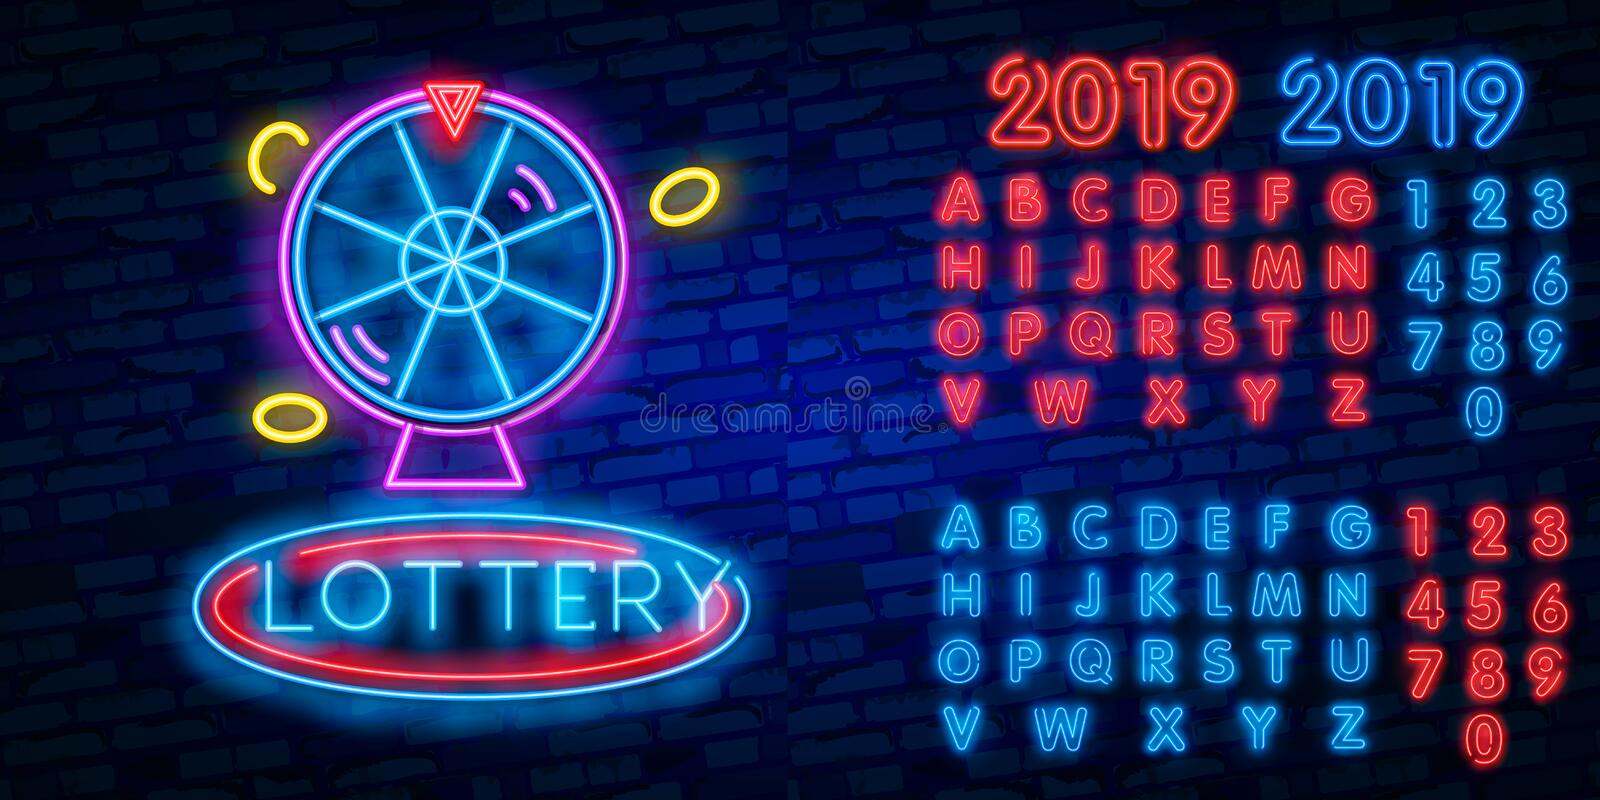 Lottery is a neon sign. Neon logo, emblem gambling, bright banner, neon casino advertising for your projects. Night light royalty free illustration